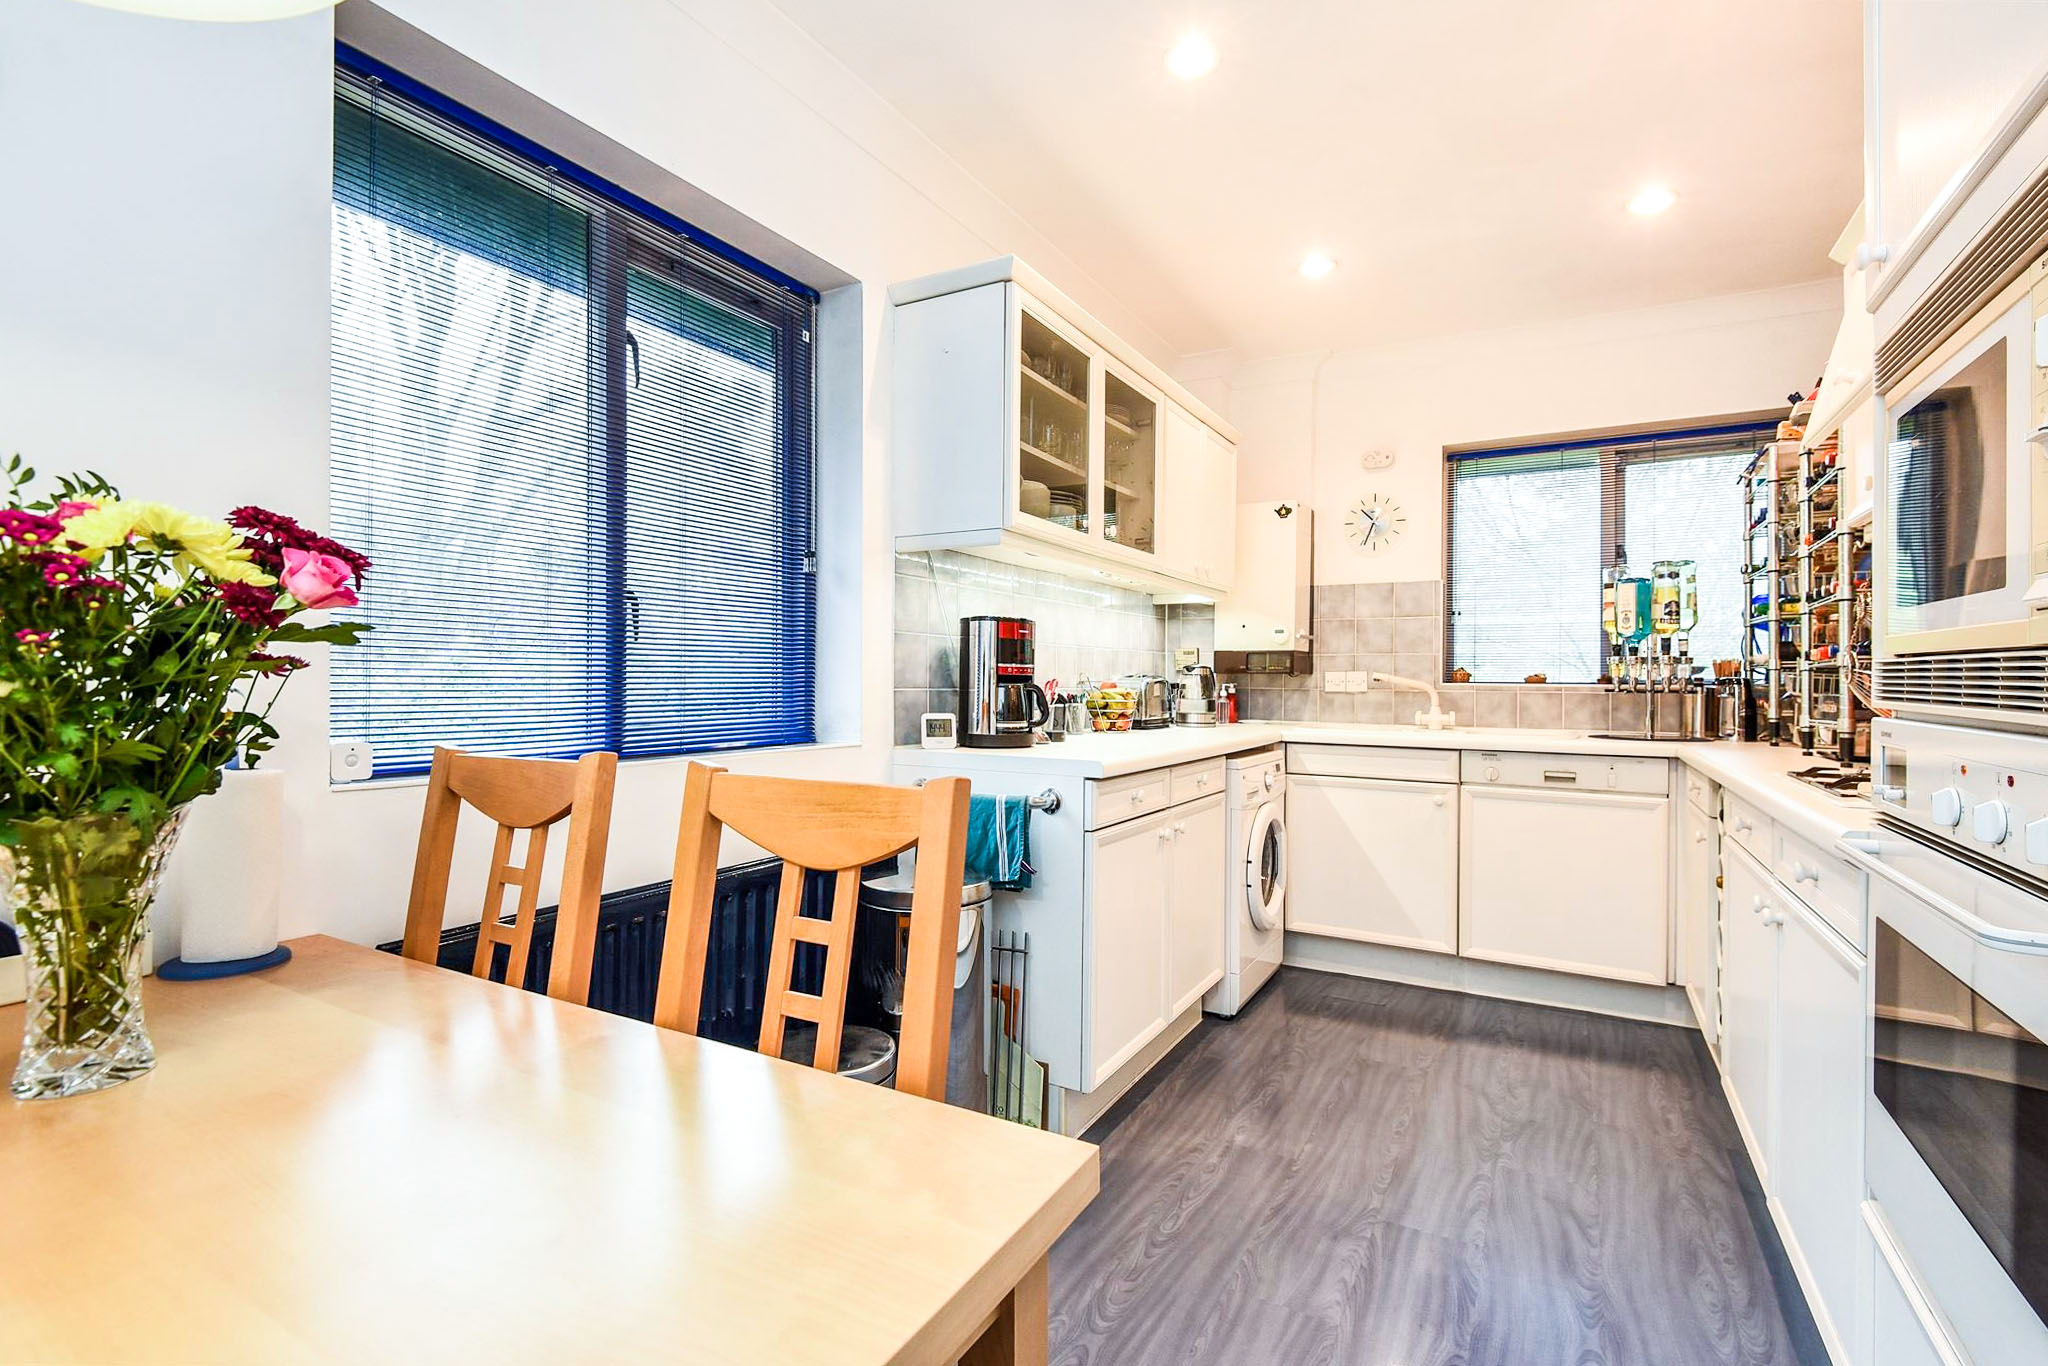 2 Bedroom Flat For Sale In Steep Hill Croydon Cr0 London